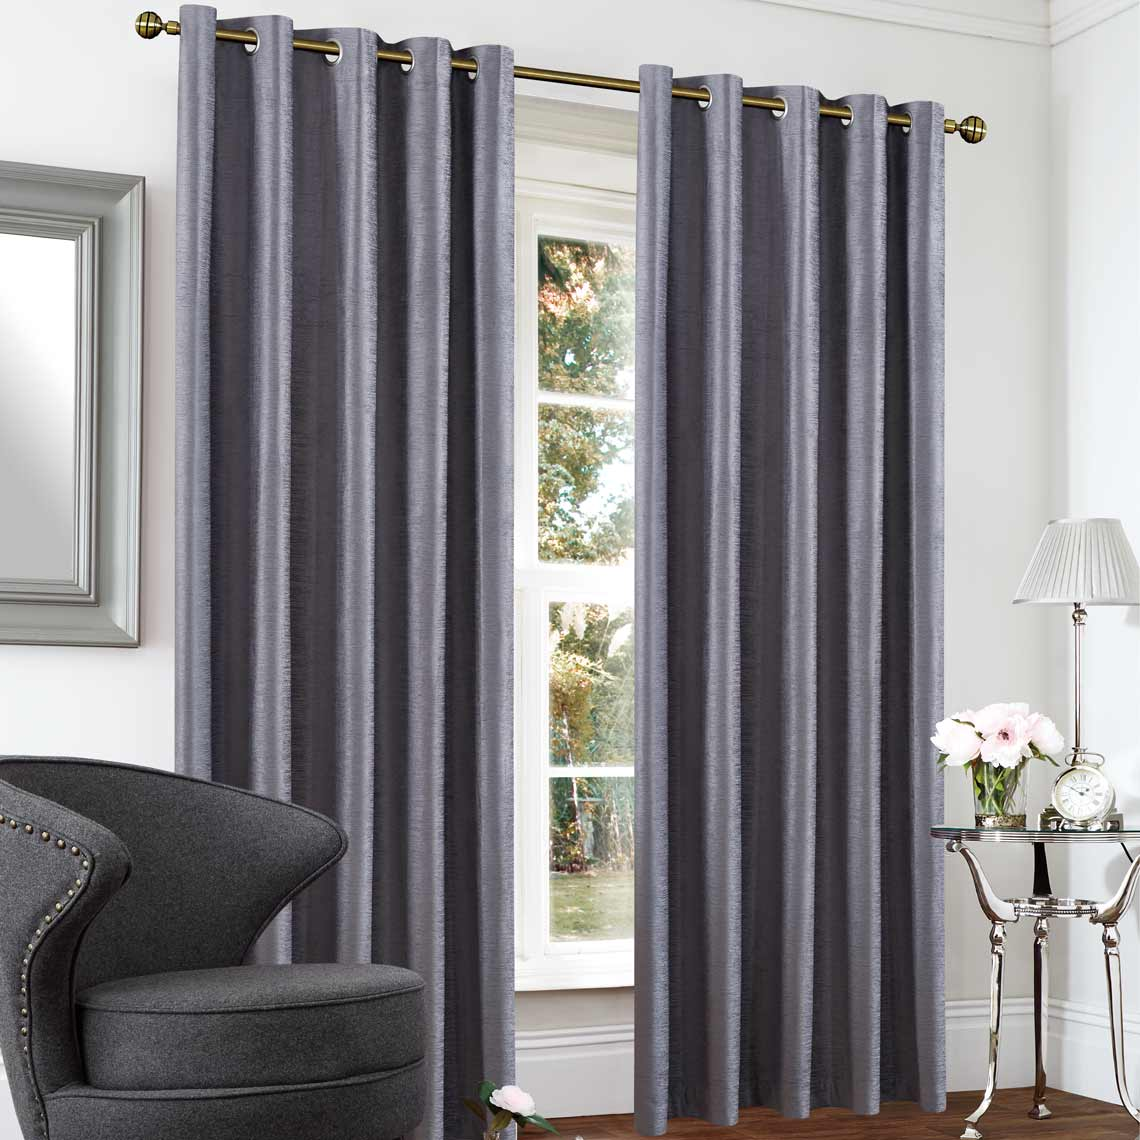 Blackout Amp Thermal Textured Curtains Home Store More